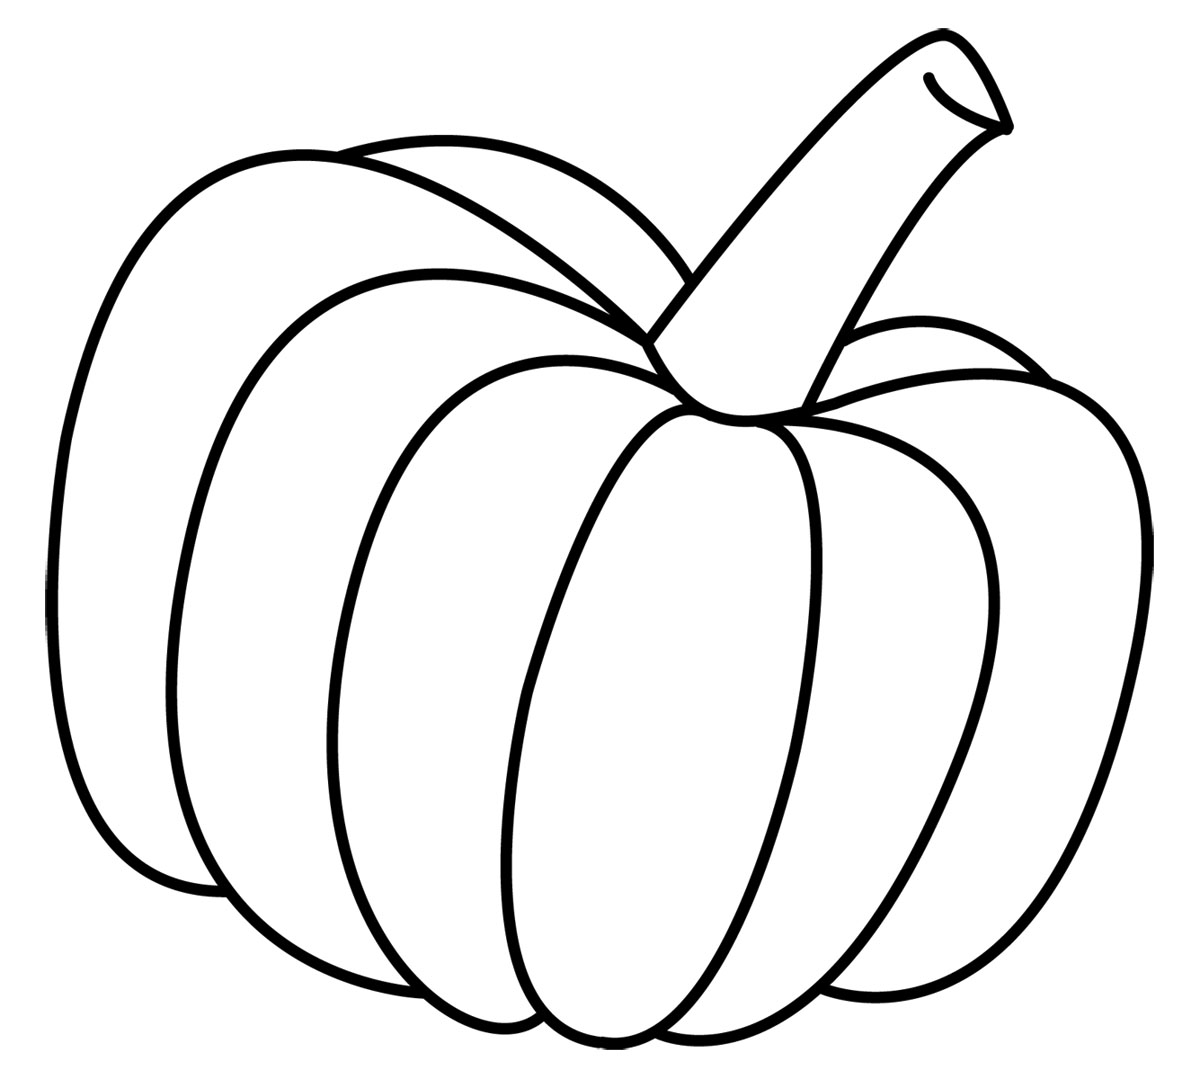 October 3rd clipart black and white picture royalty free library Free Image Pumpkin, Download Free Clip Art, Free Clip Art on Clipart ... picture royalty free library